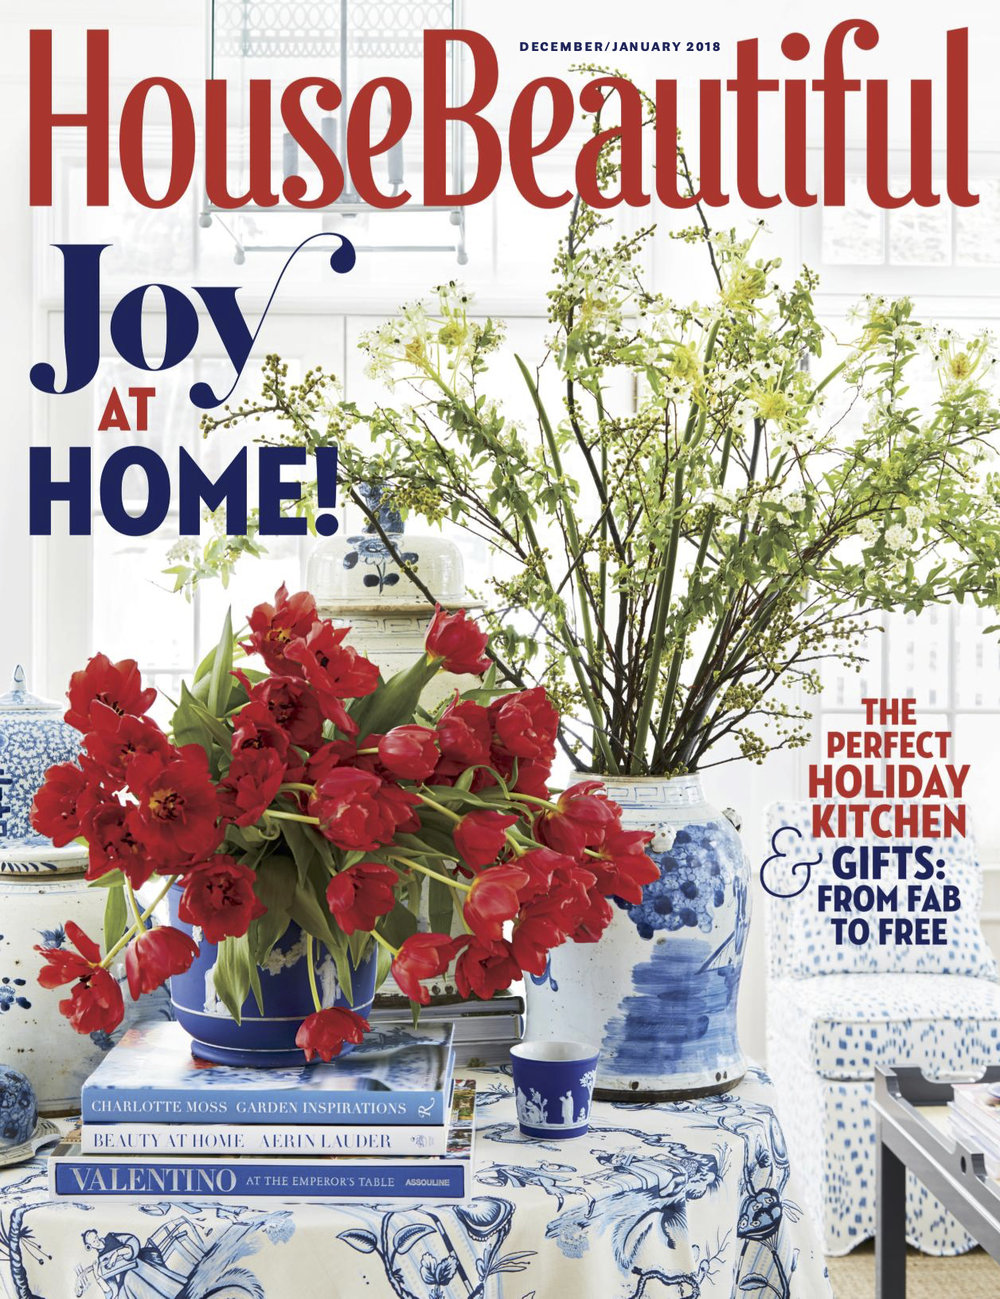 House Beautiful, Dec / Jan 2018